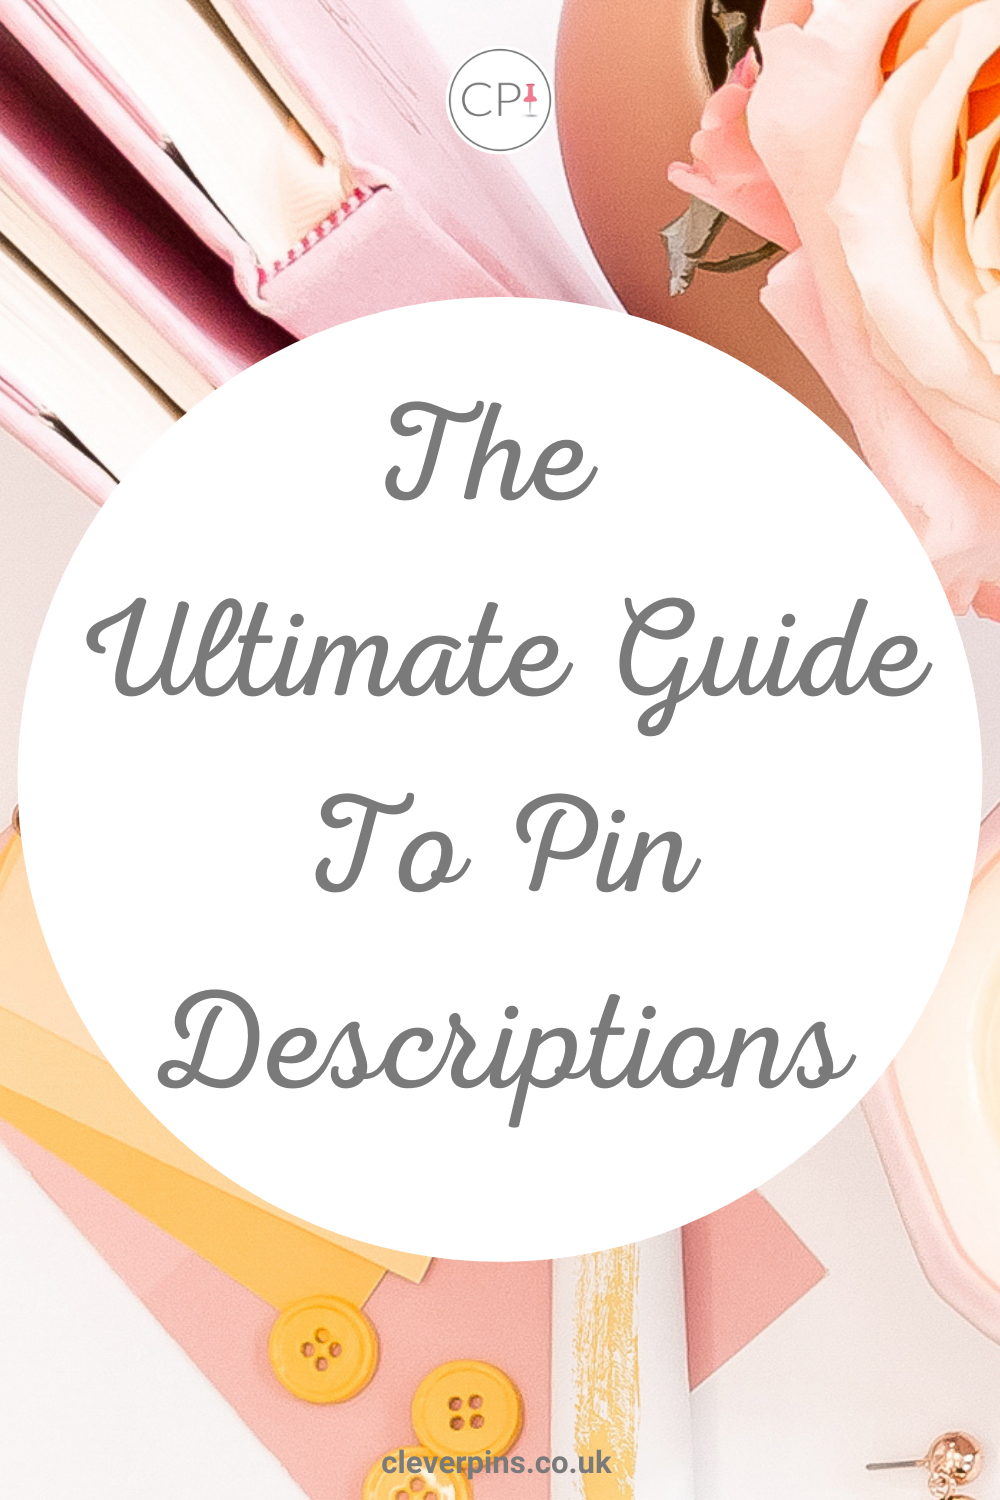 The Ultimate Guide To Pin Descriptions